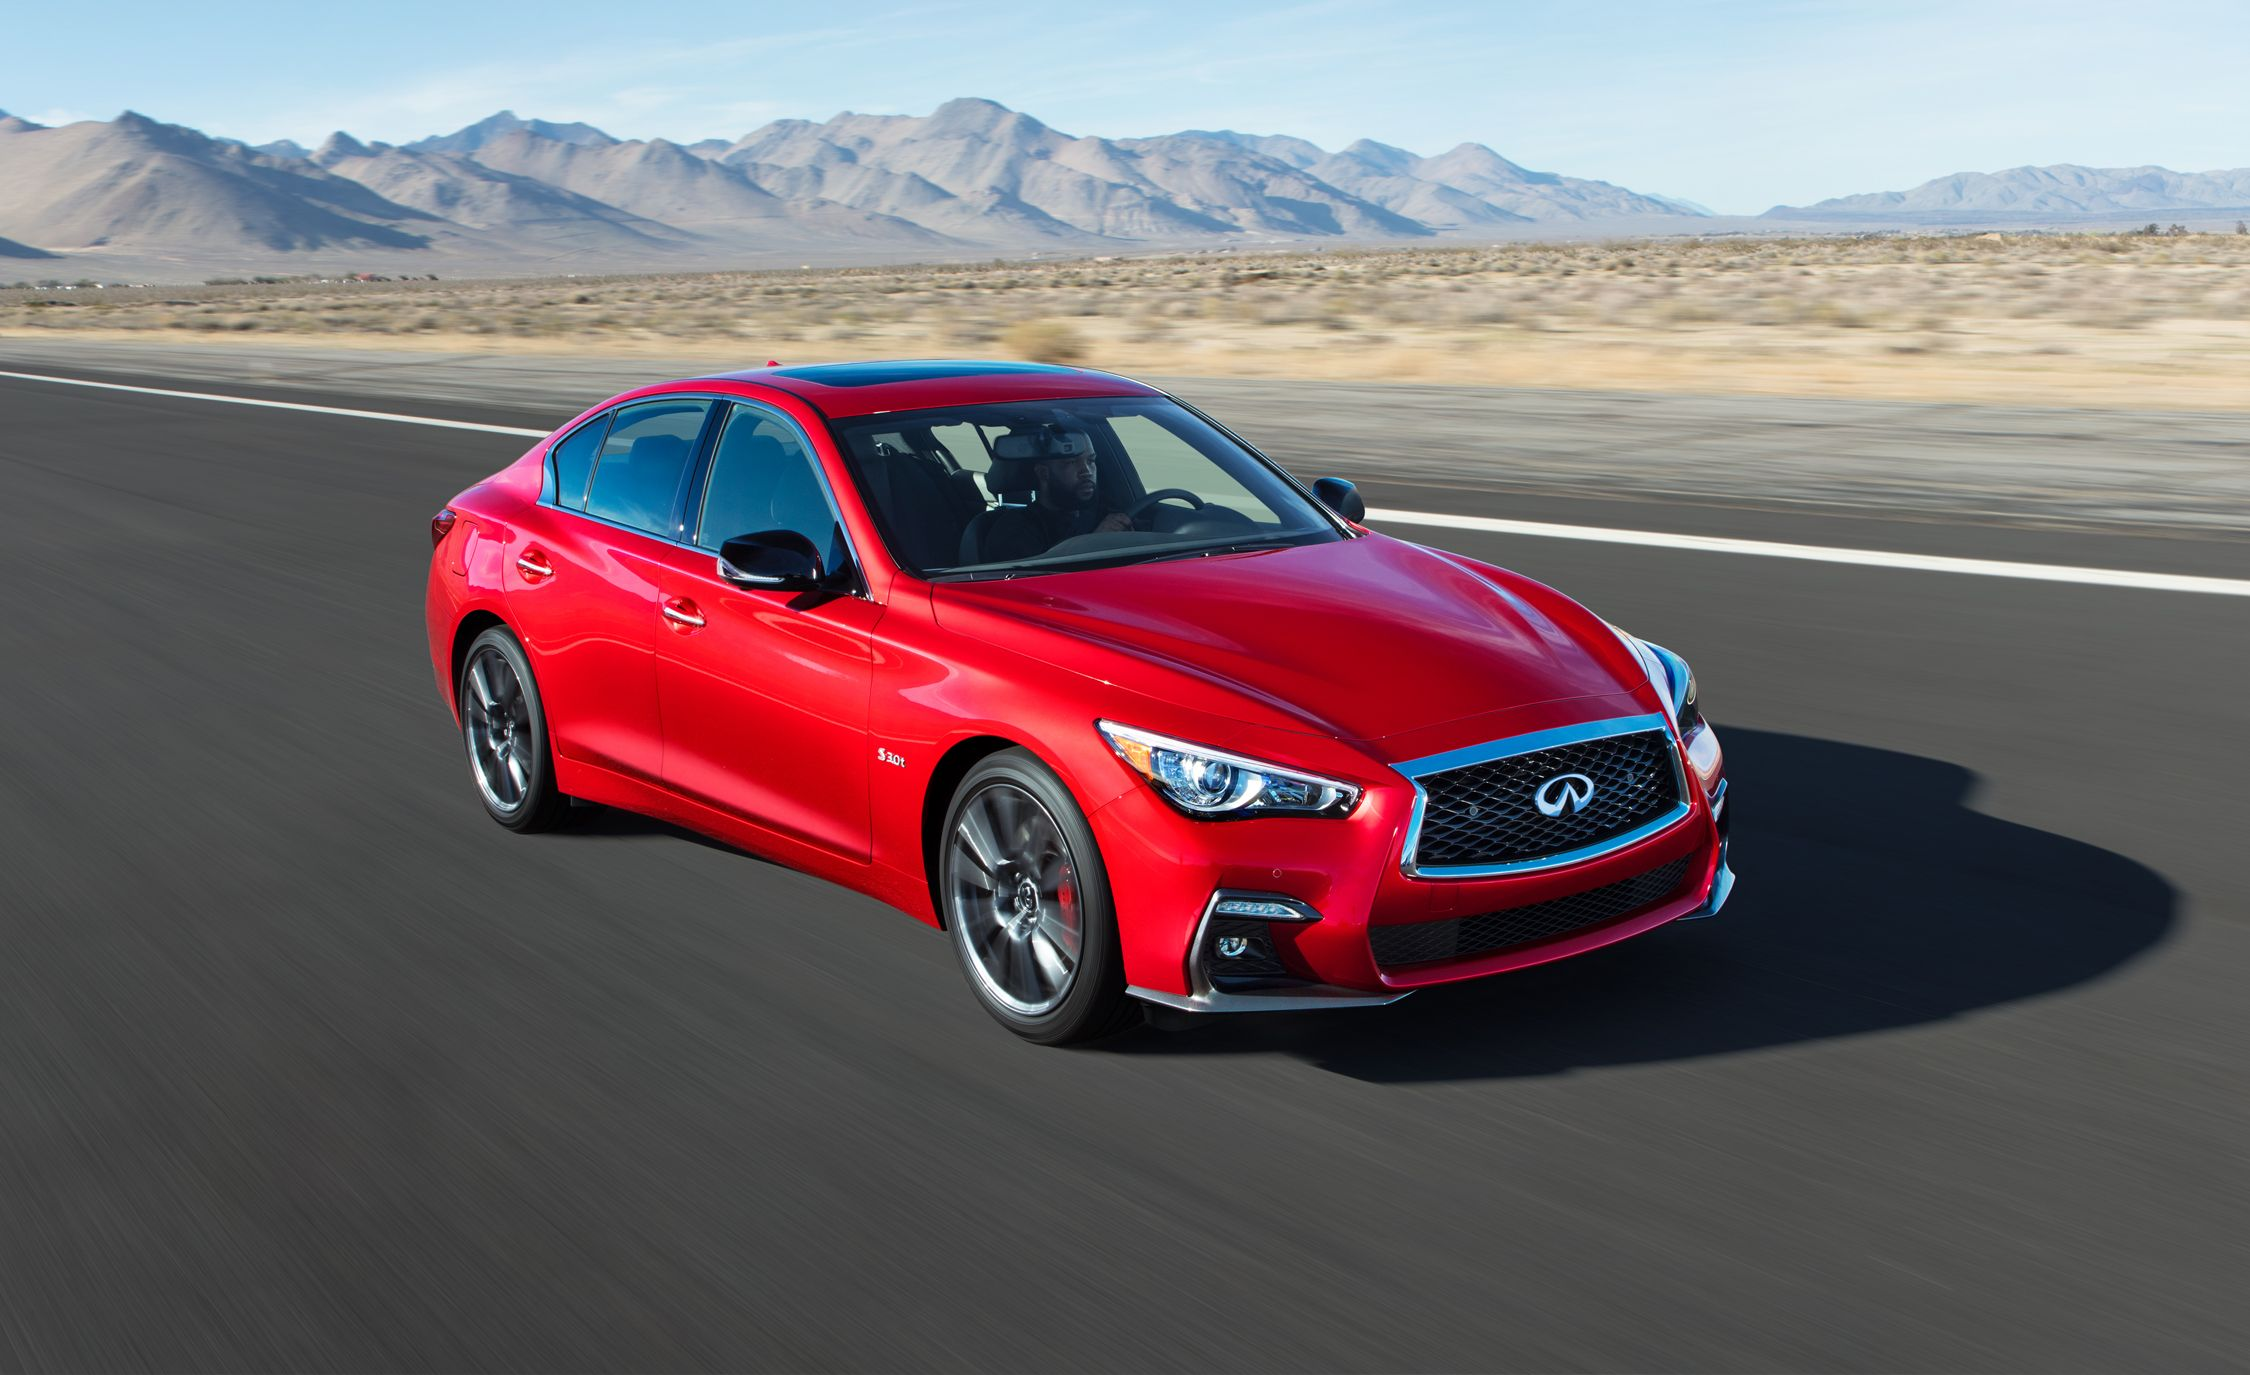 2018 Infiniti Q50: The Endless Updates Continue